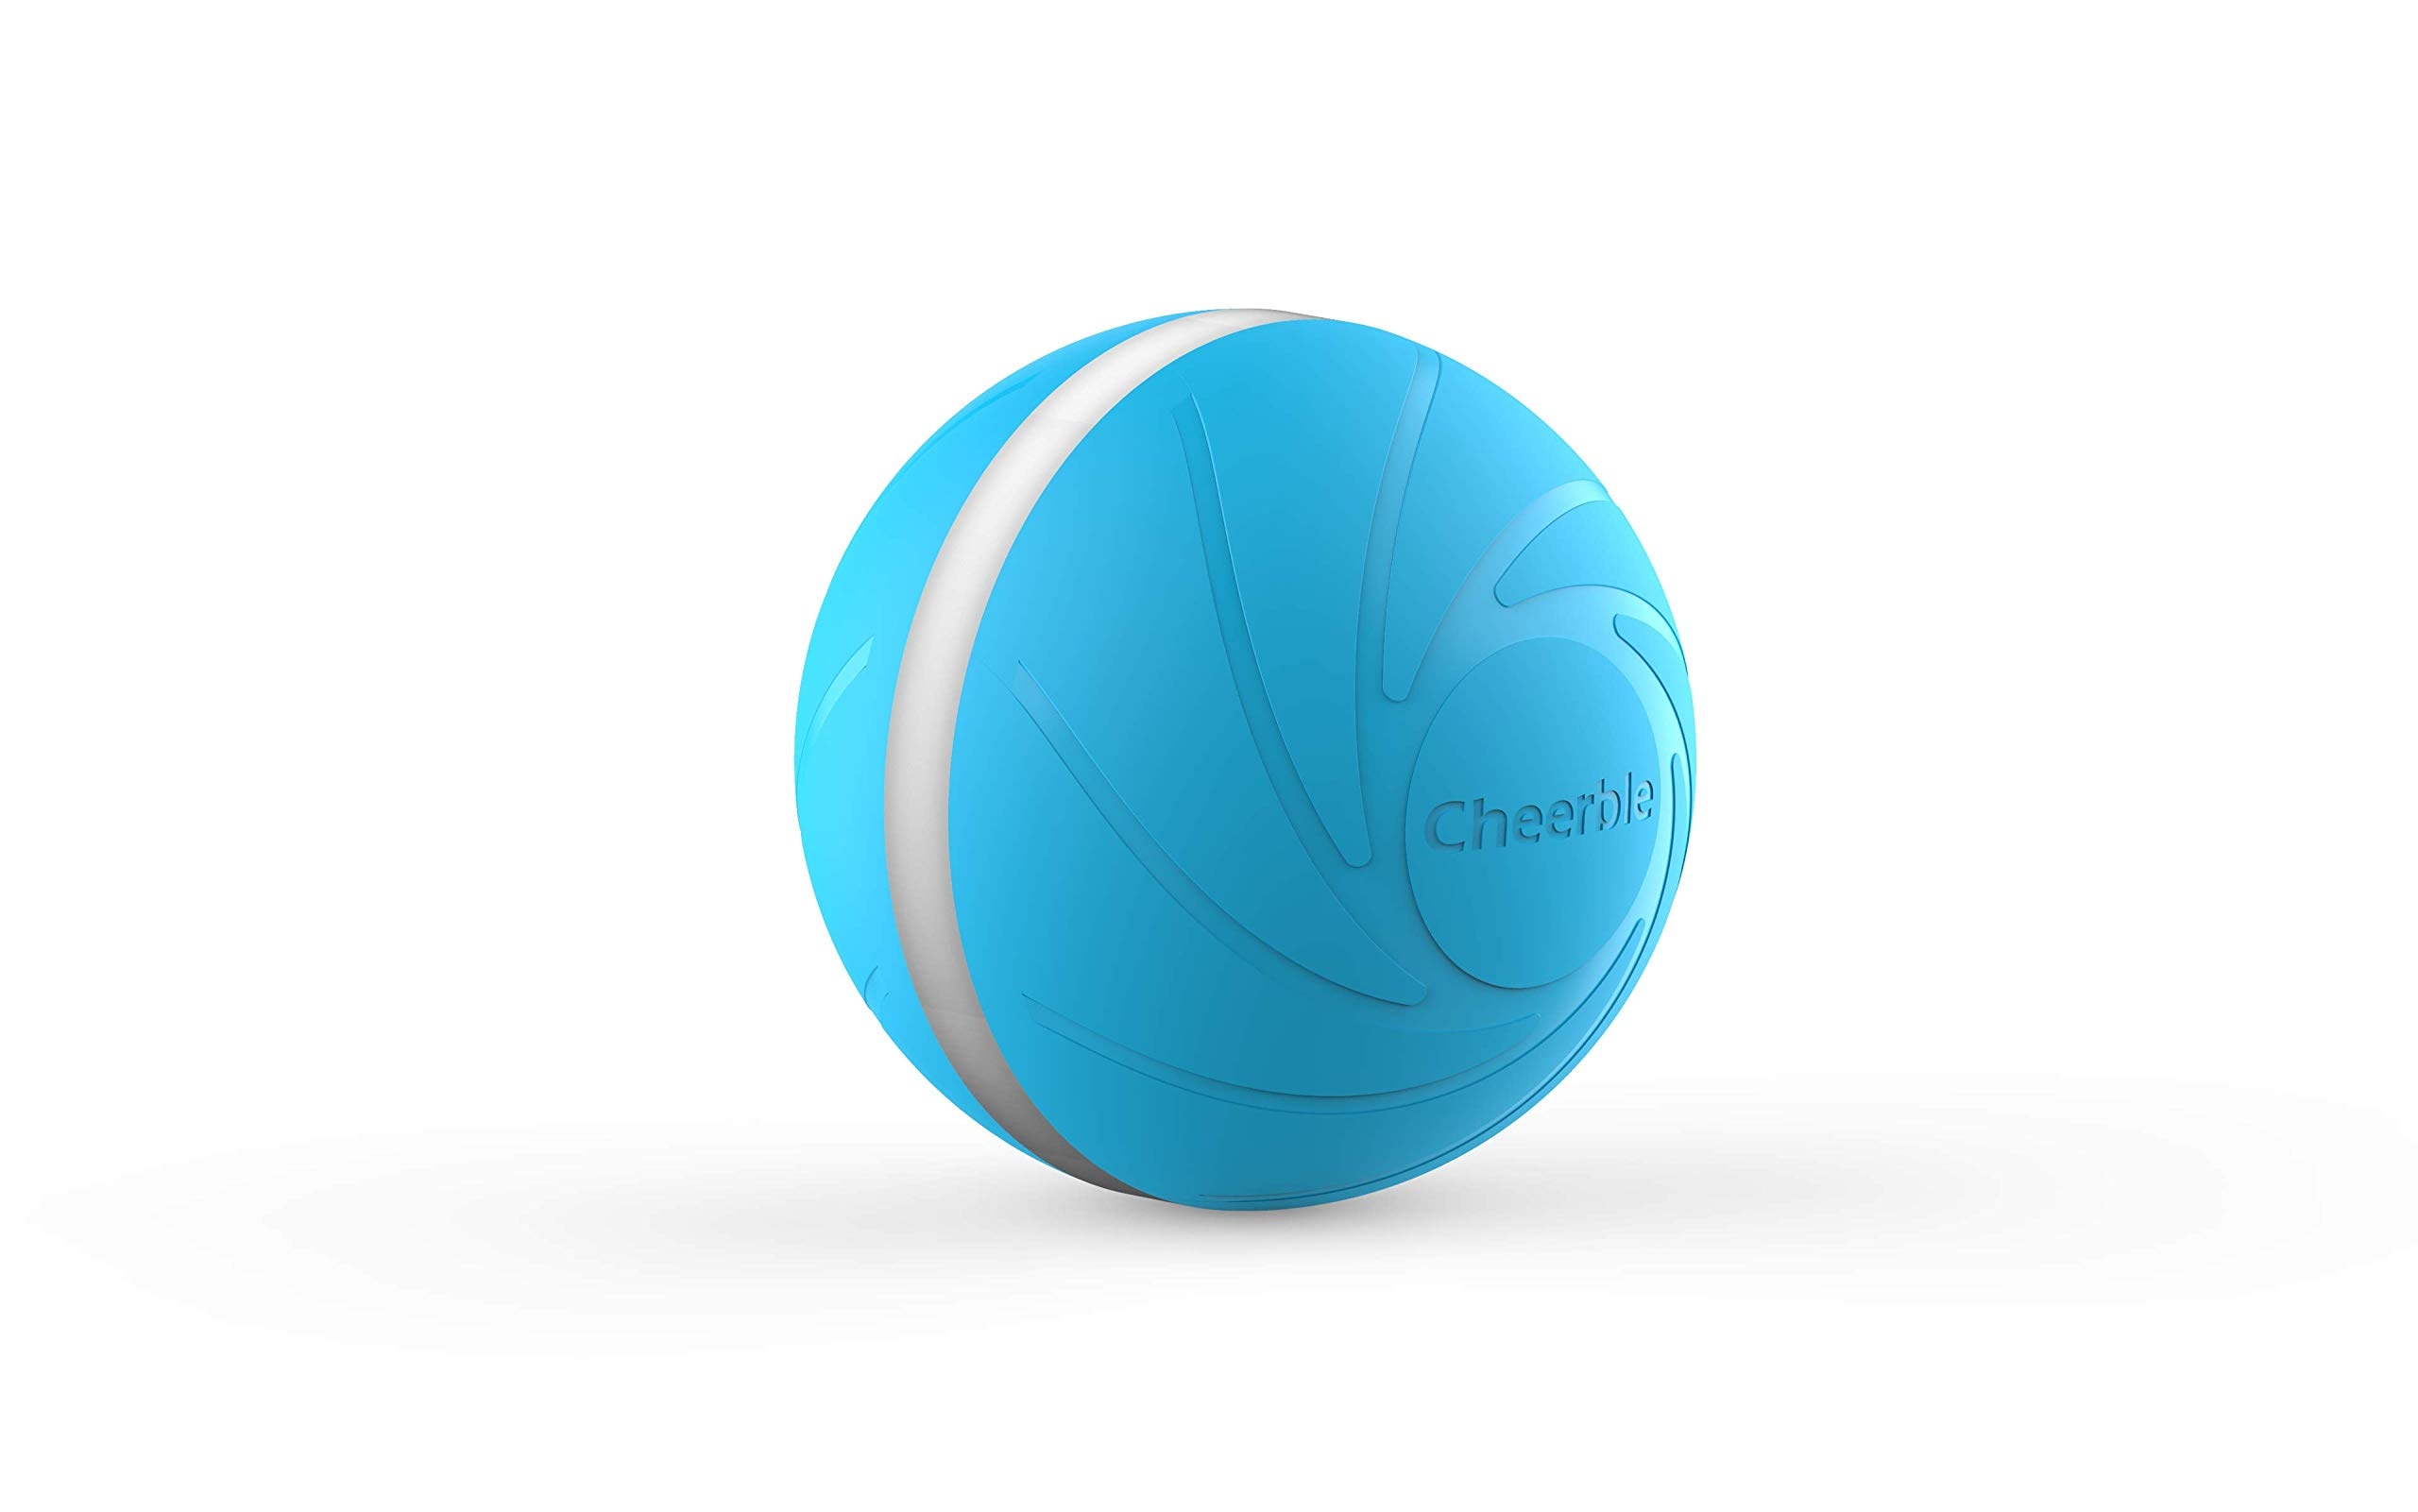 Wicked Ball, Your Pet's First Automatic Companion, 100% Automatic Ball to Keep Your Pets Entertained All Day by Sikoon